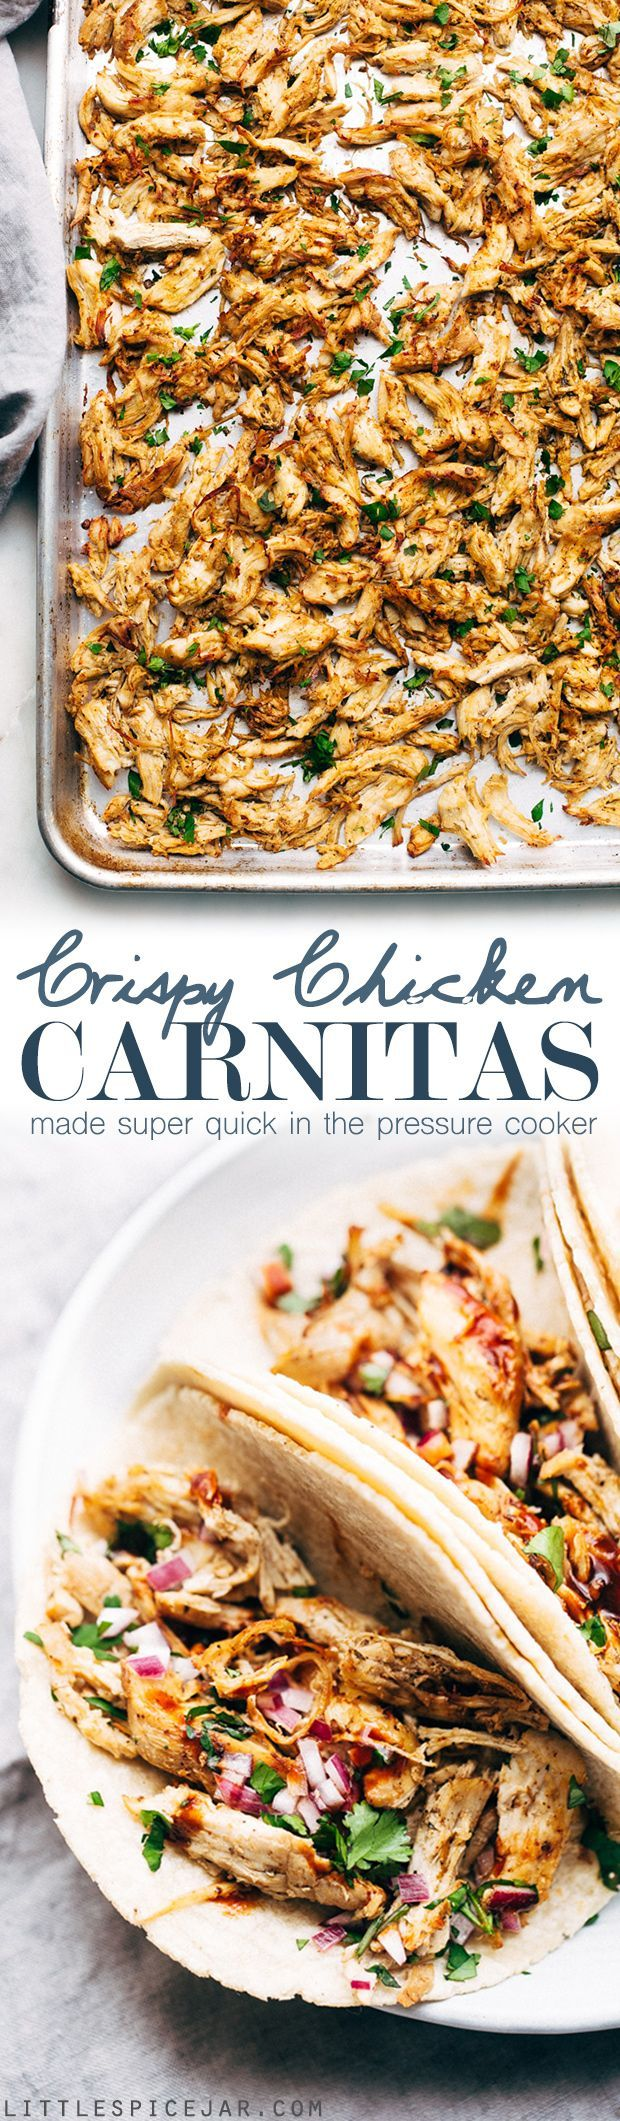 Pressure Cooker Crispy Chicken Carnitas: the easiest way to make carnitas - this instant pot recipe makes the most delicious carnitas! Top with lots of cilantro, onions, sautéed cabbage, and homemade chipotle sauce | Littlespicejar.com